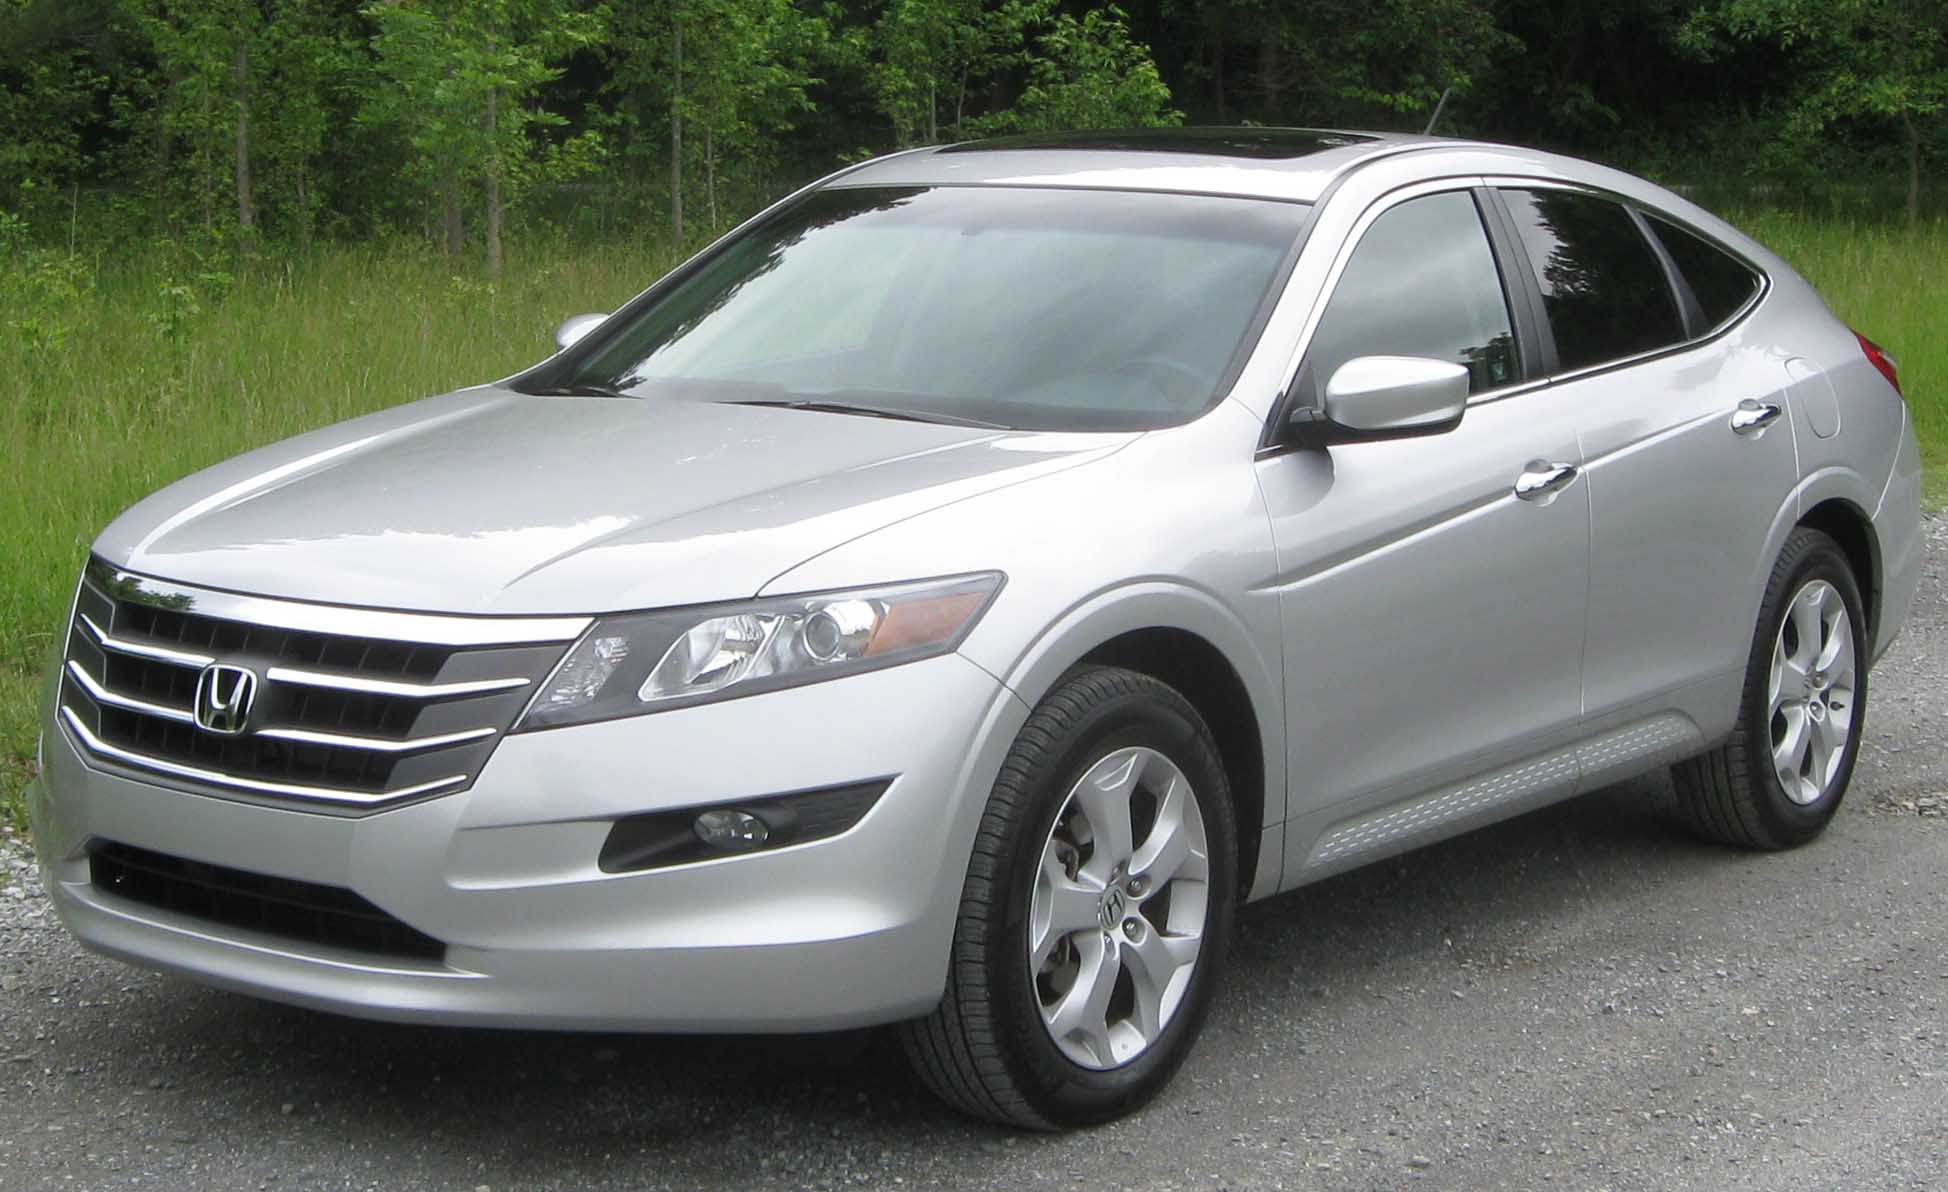 2011 Honda Accord Crosstour #7